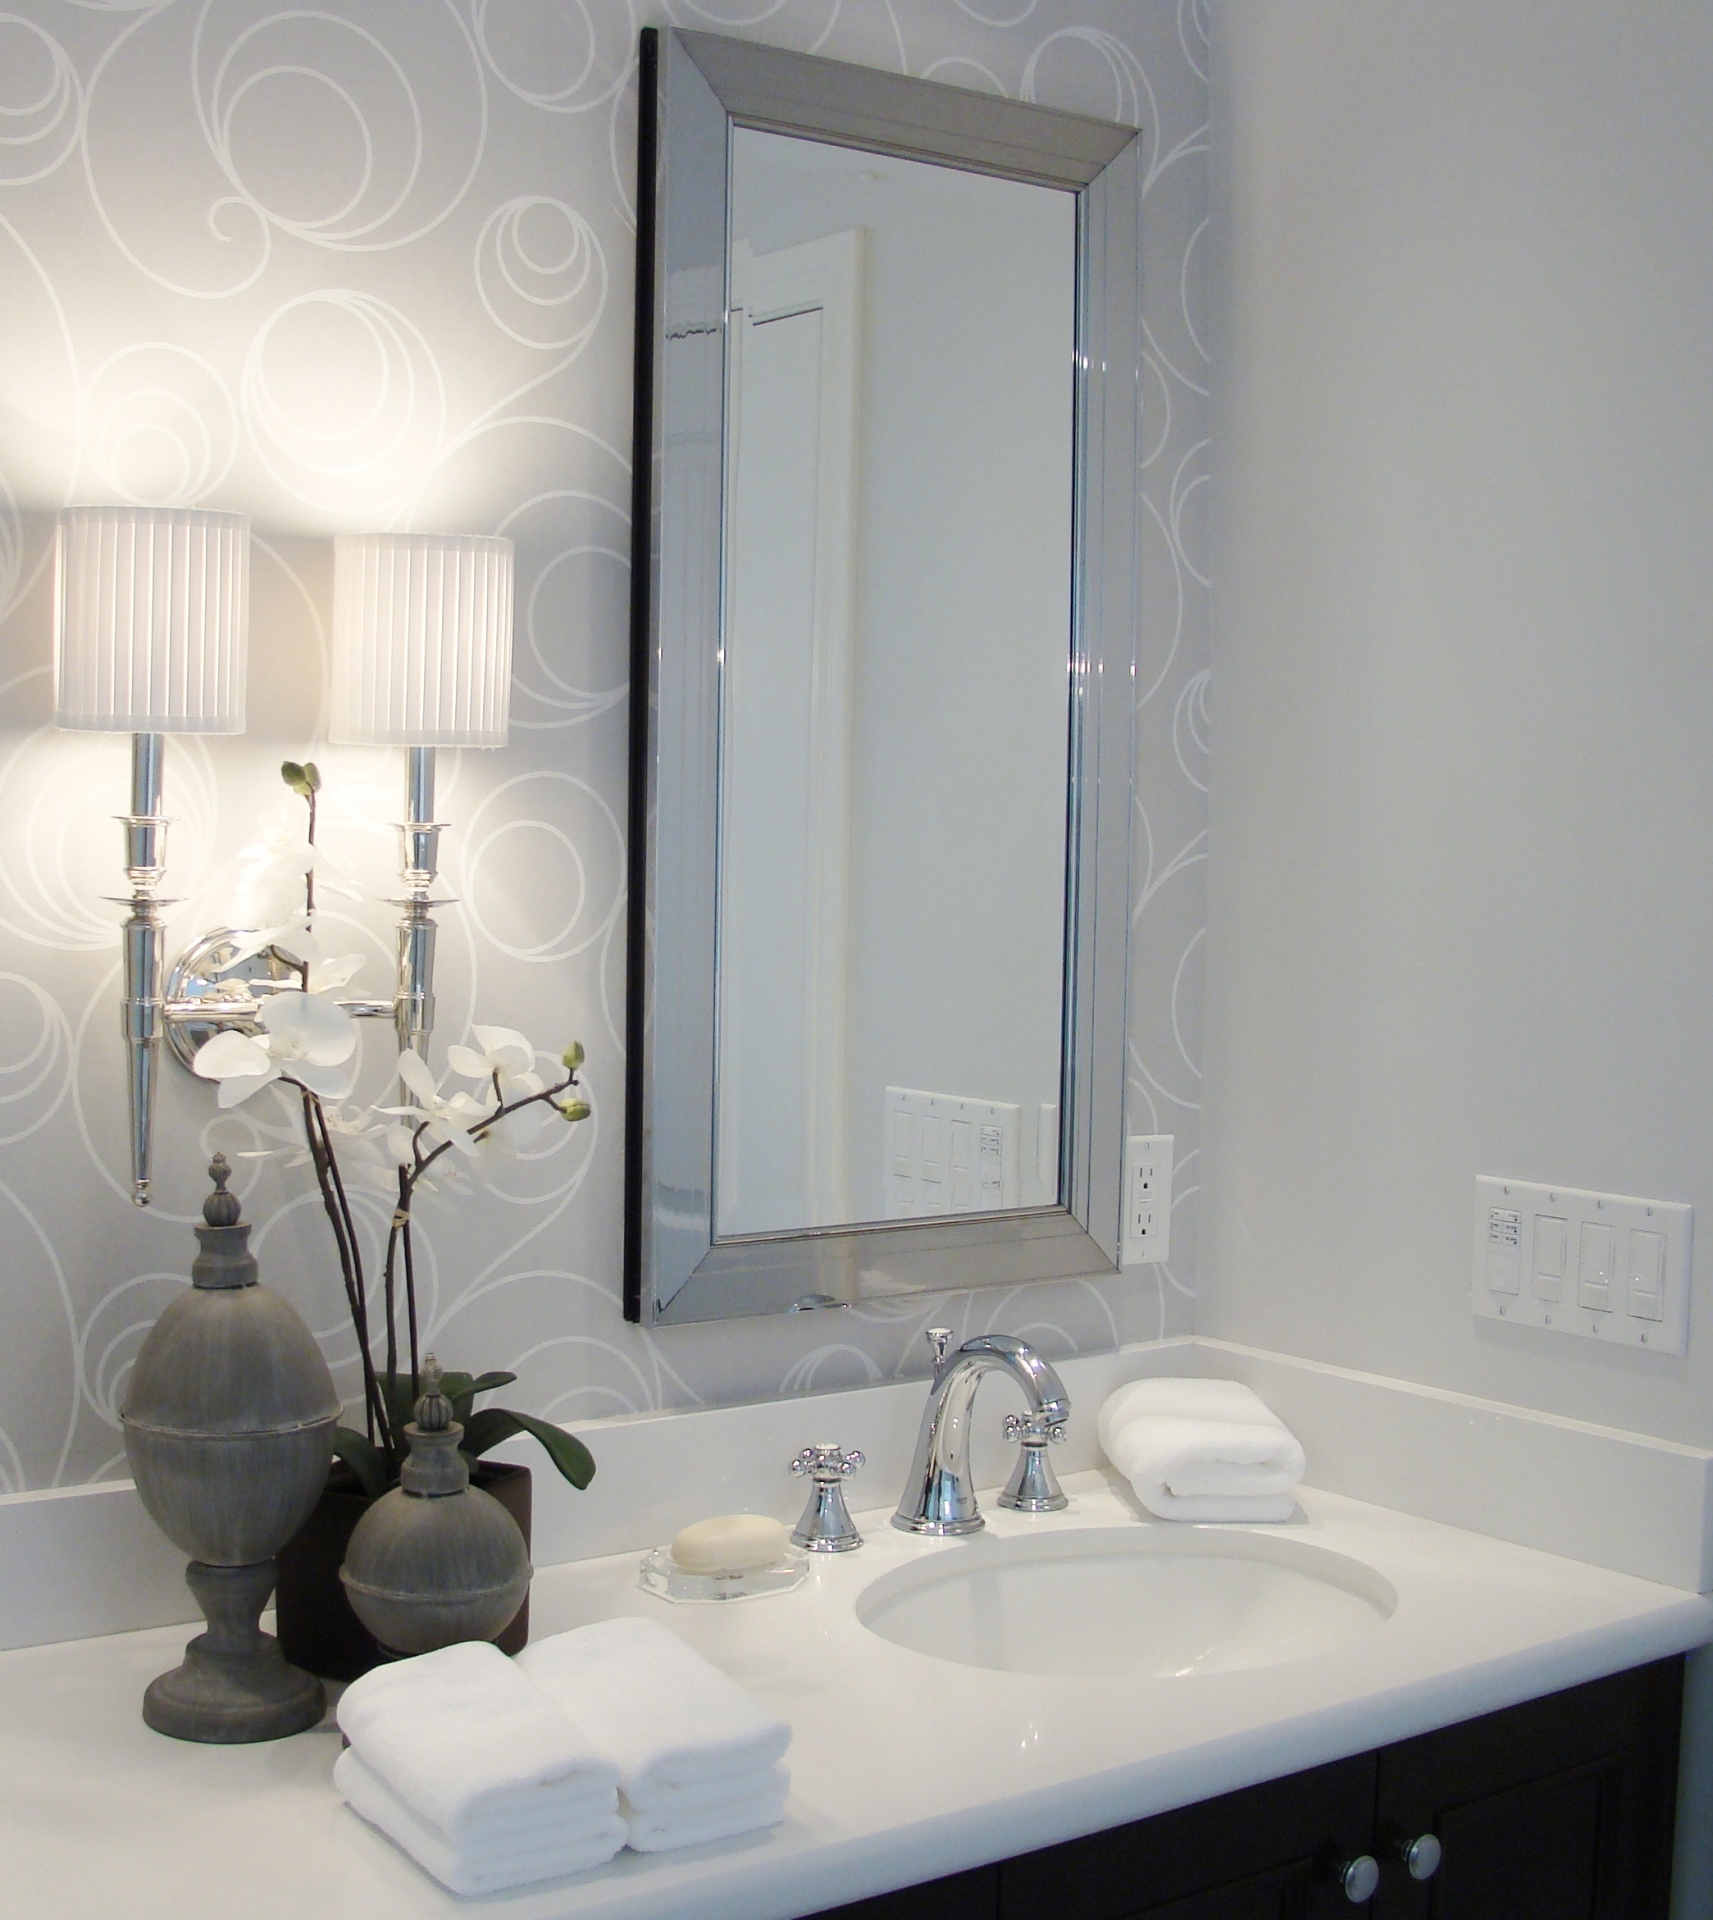 Fiorito Interior Design, interior design, remodel, master bathroom, white and grey, custom vanity, sconce, framed mirror medicine chest, wallpaper